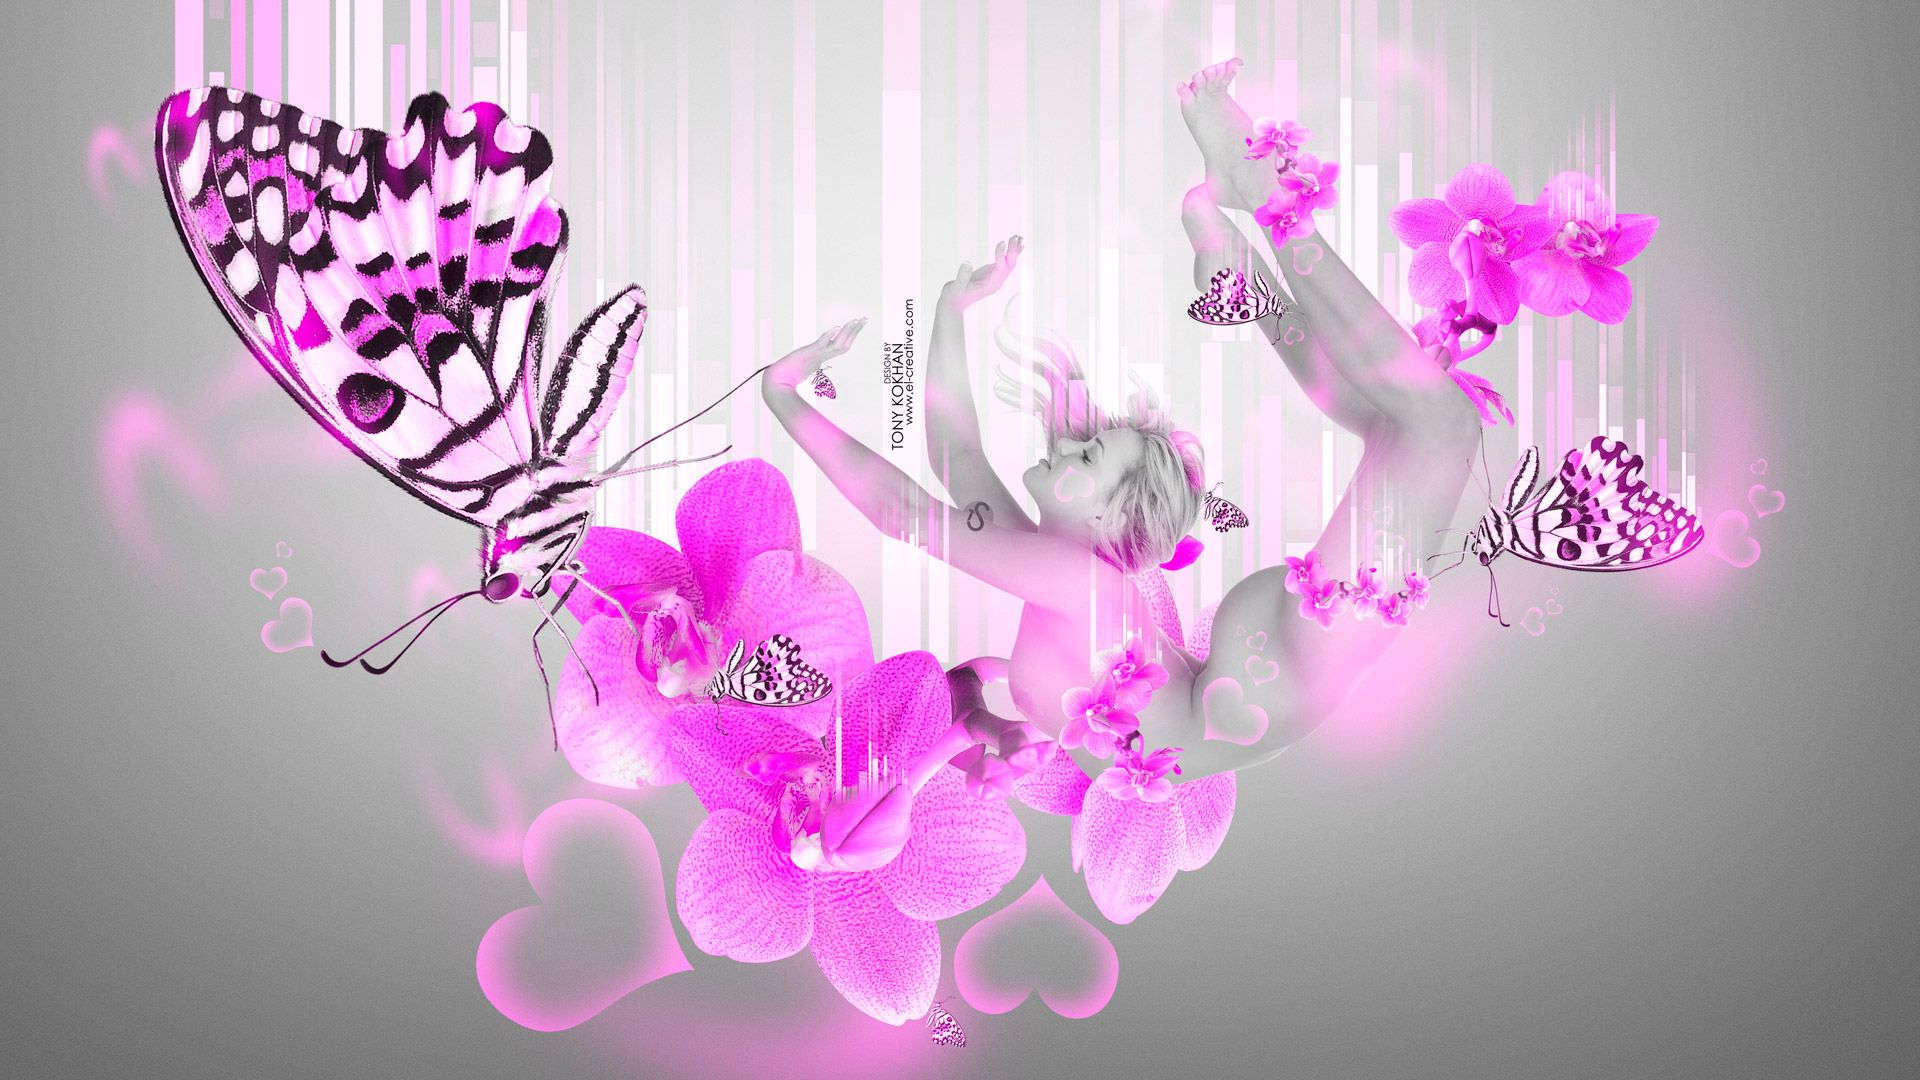 Neon Butterfly Backgrounds - Butterfly-amazing Paintings-29 , HD Wallpaper & Backgrounds